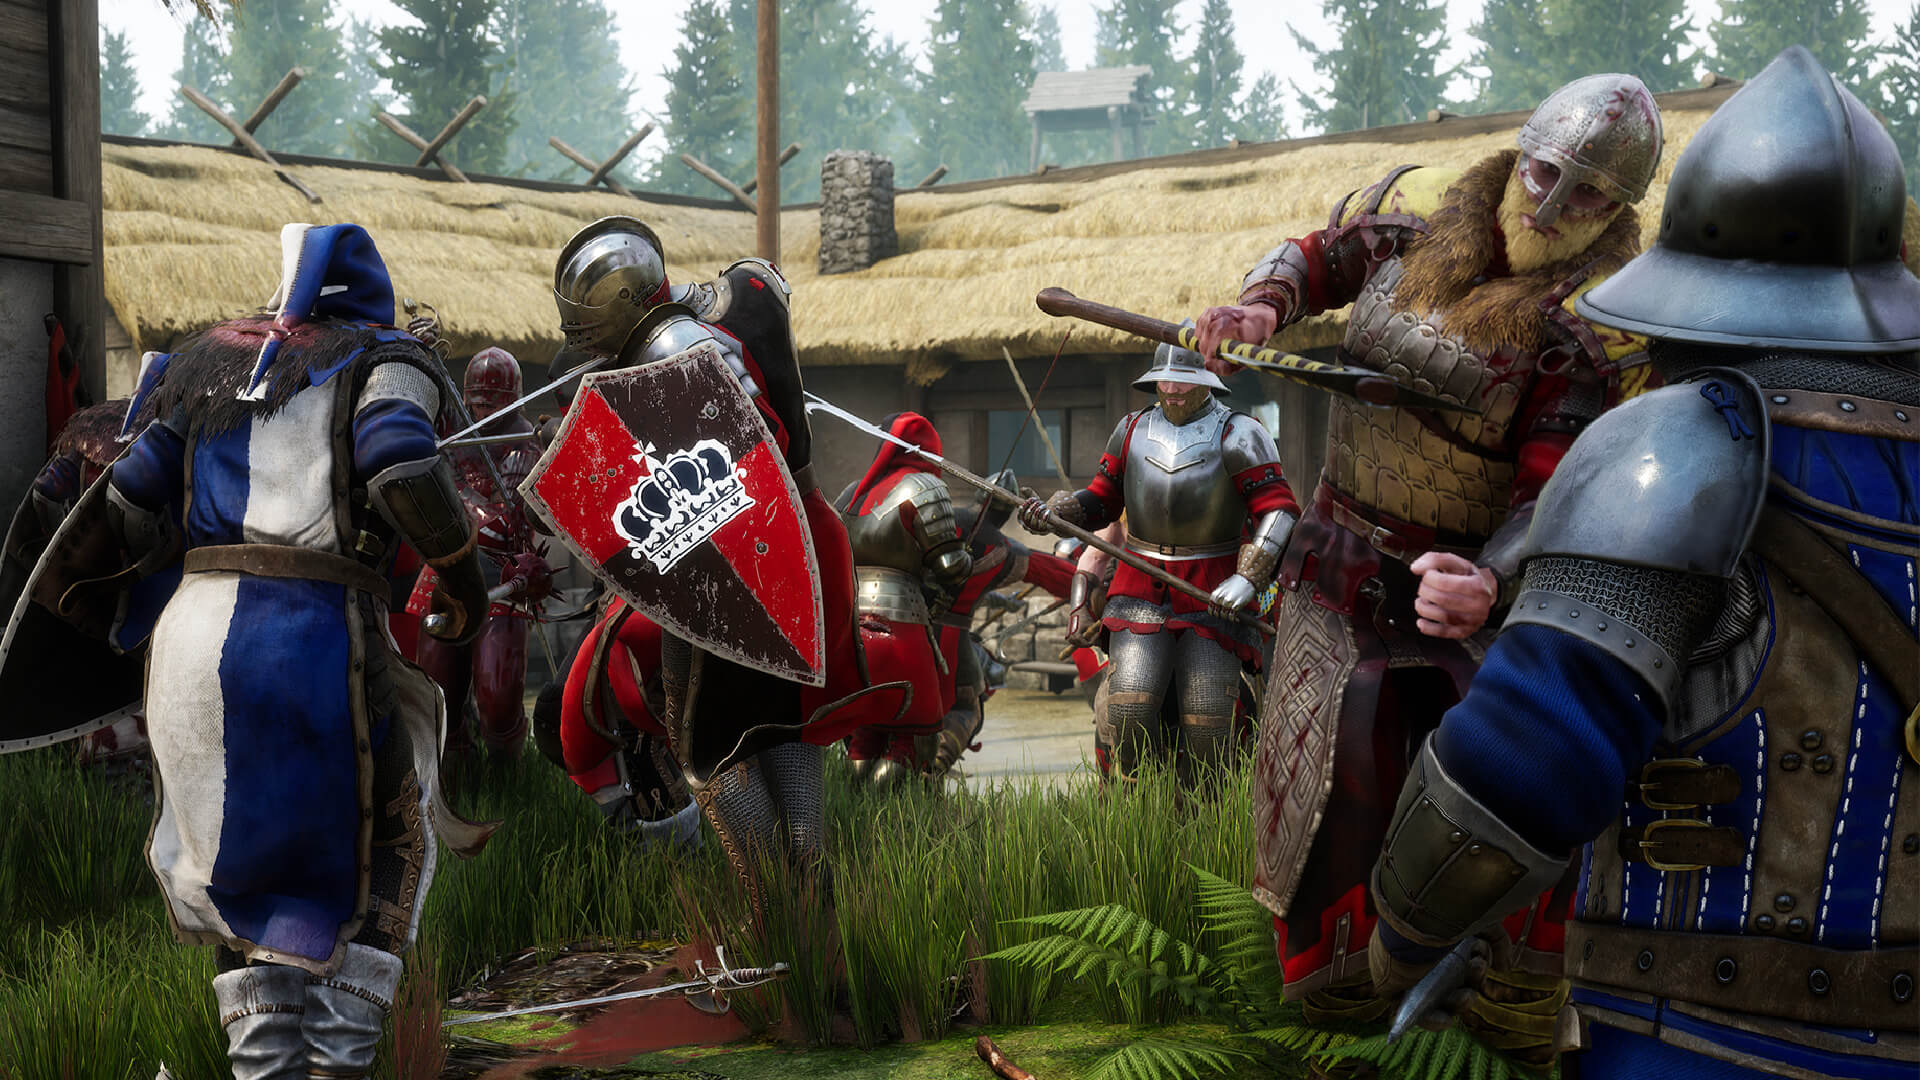 Medieval first-person melee game, Mordhau, has sold more than one million copies